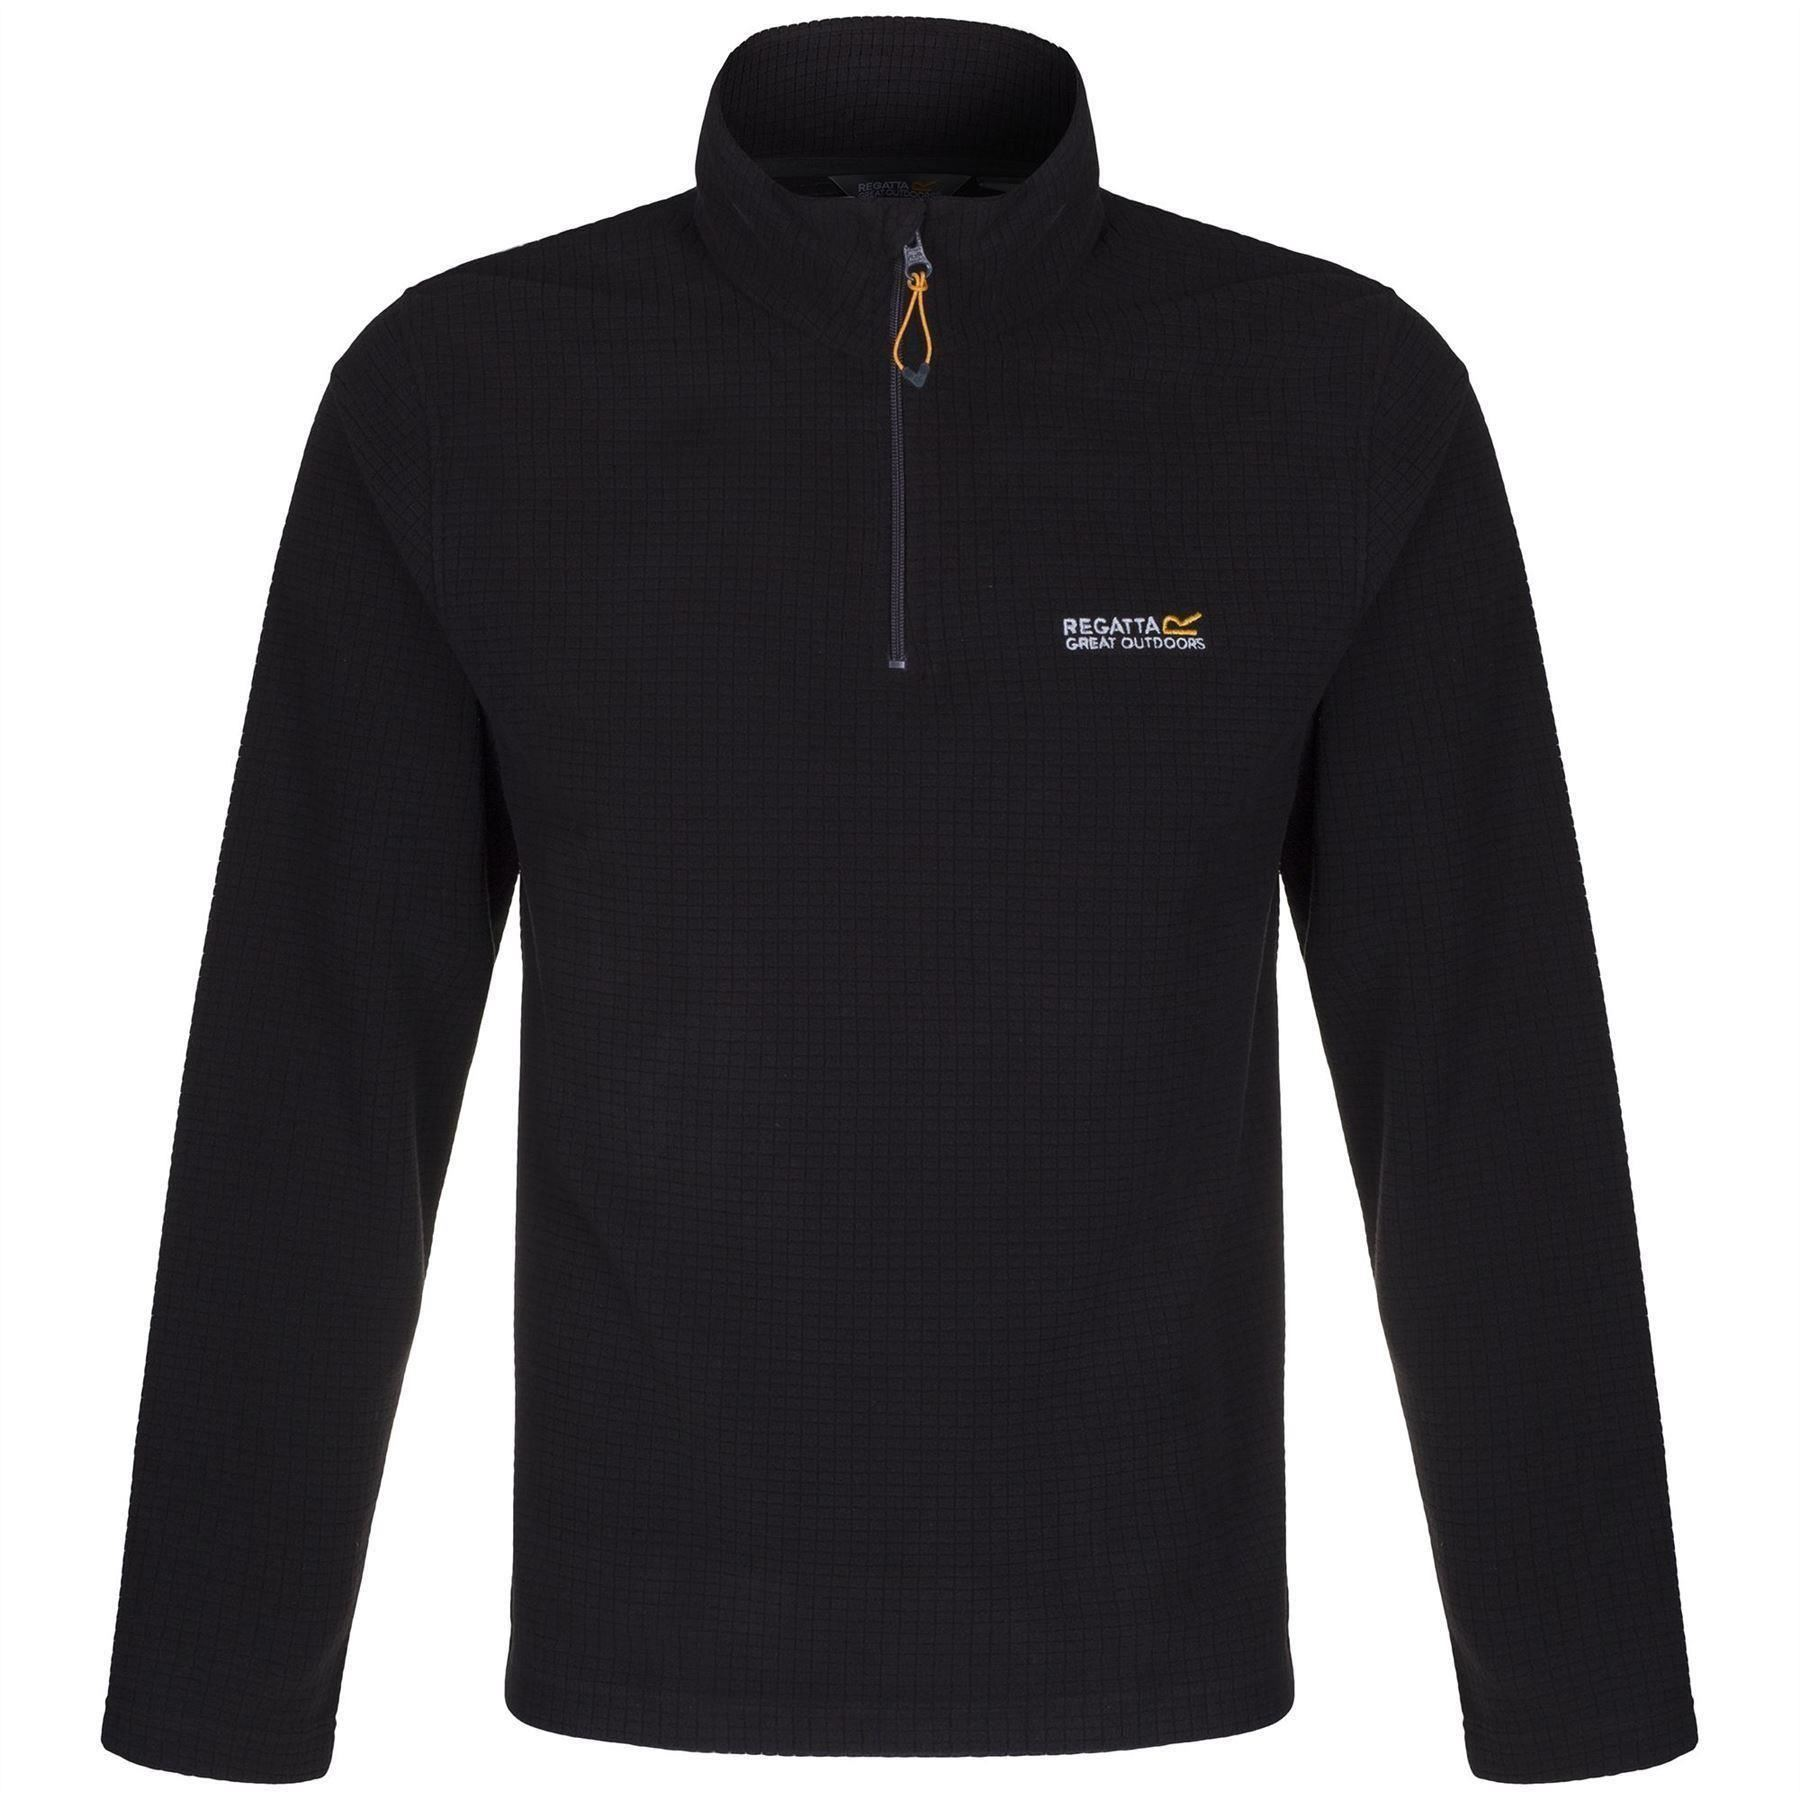 Regatta-Elgon-para-hombre-Half-Zip-Fleece-Pullover-Jumper-Top-RMA236 miniatura 6